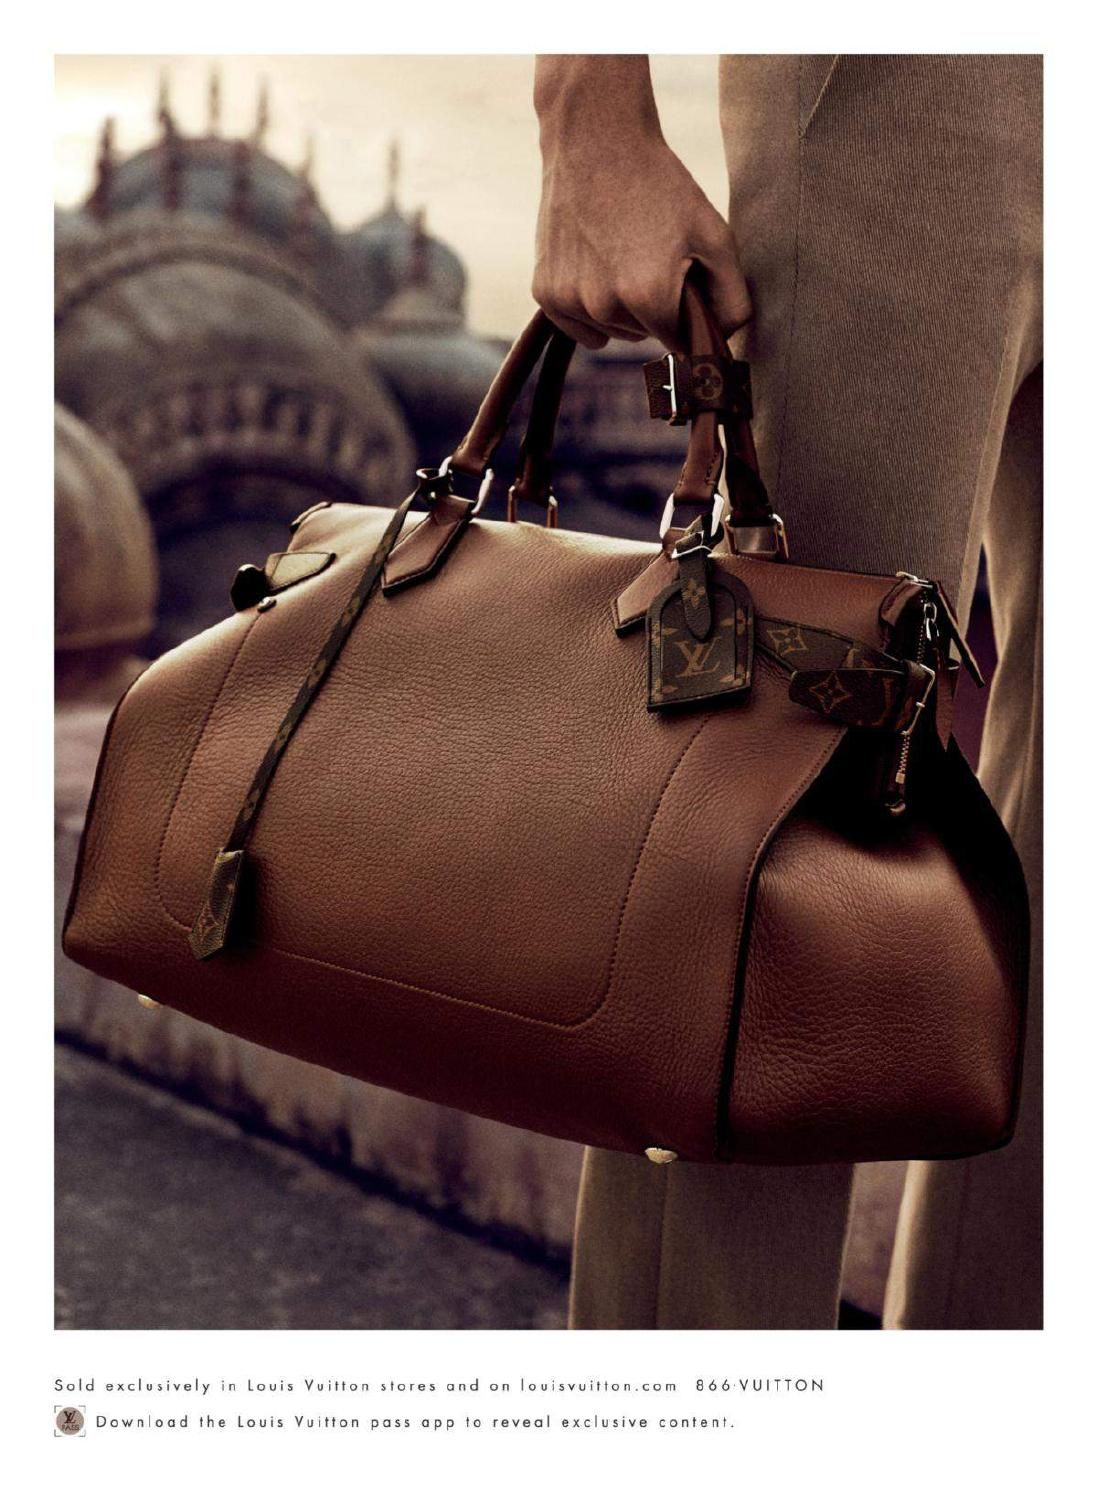 b81bf36fb4c1 ... louis vuitton handbags then CLICK VISIT link for more details. ISSUU -  GQ USA - Mayo 2015 by Abilix